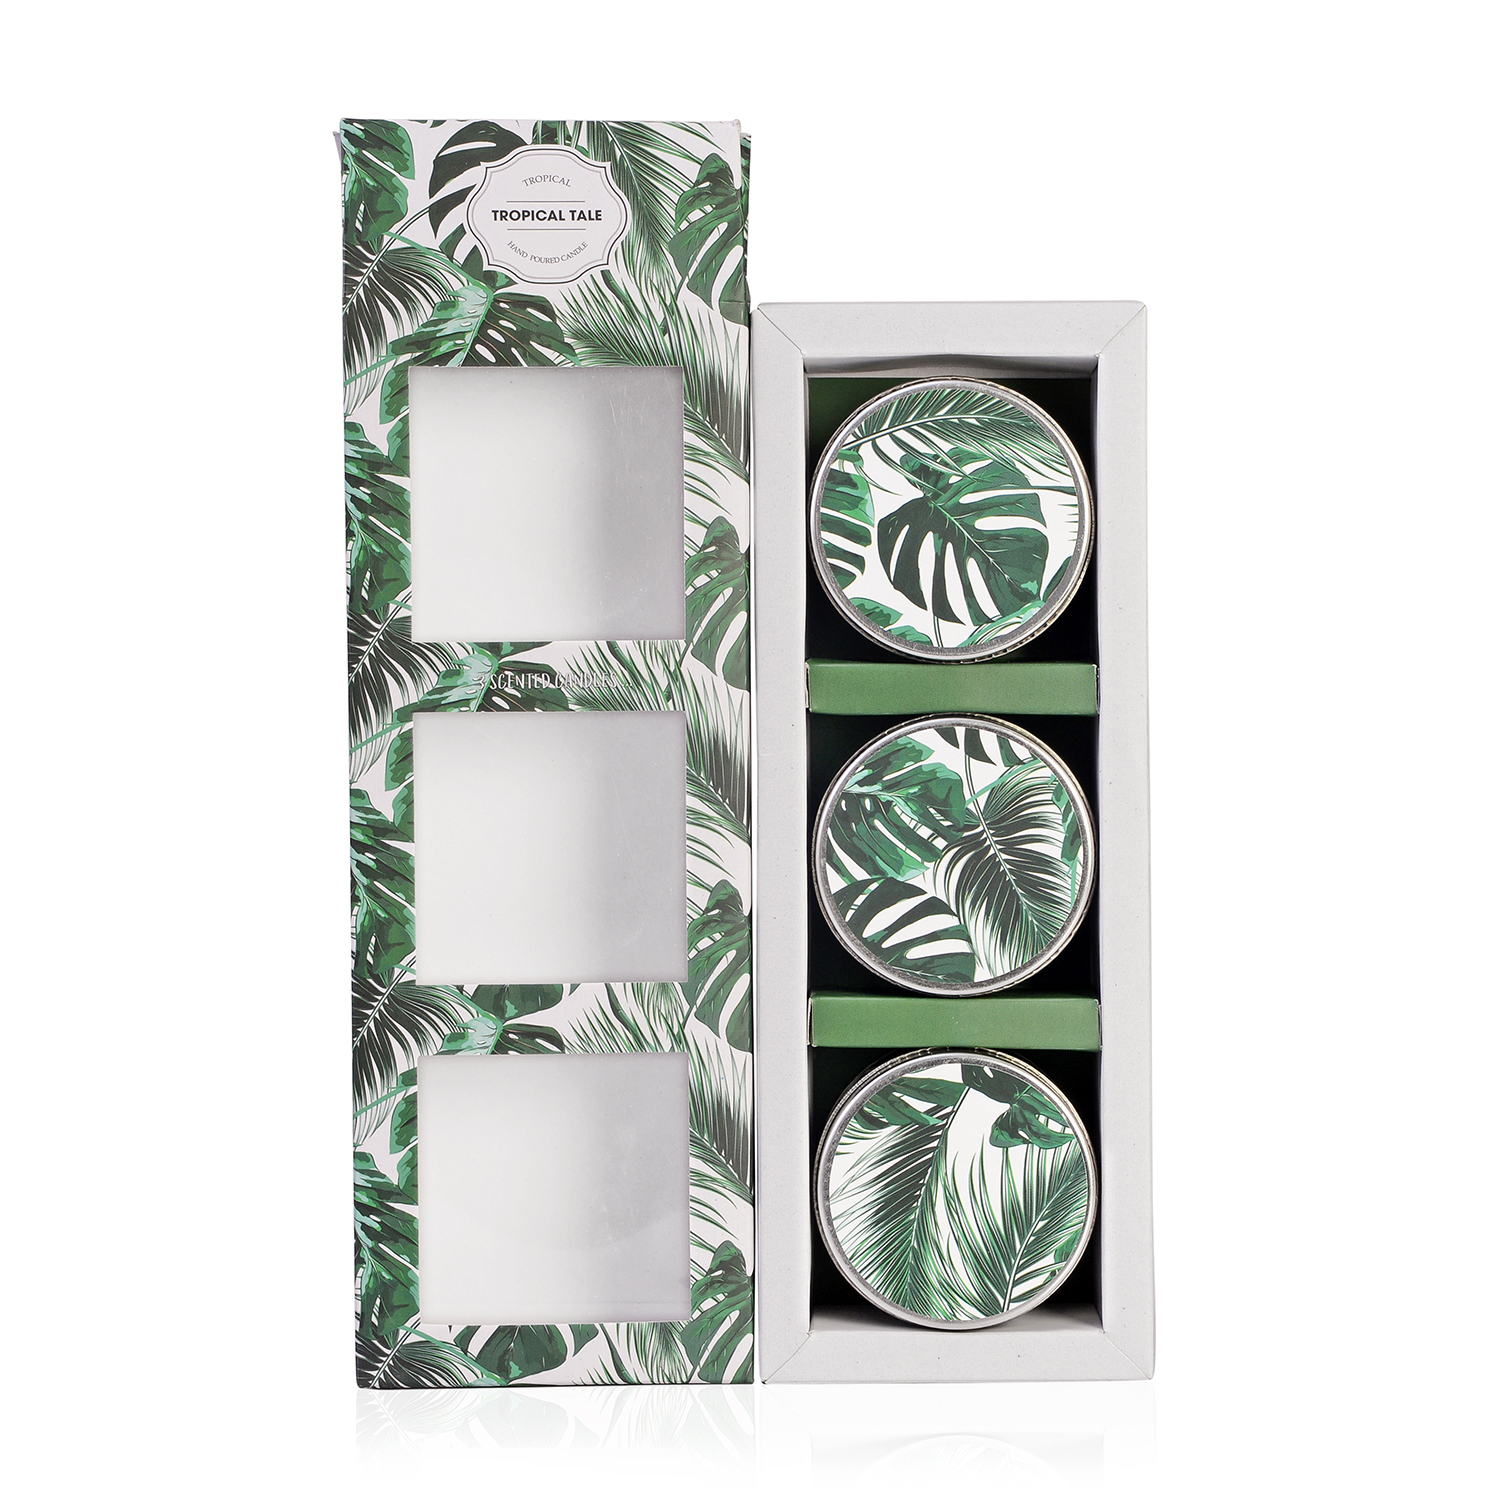 Tropical Tale- Set of 3 Hand Poured Scented Candles (3x2 in/ea)